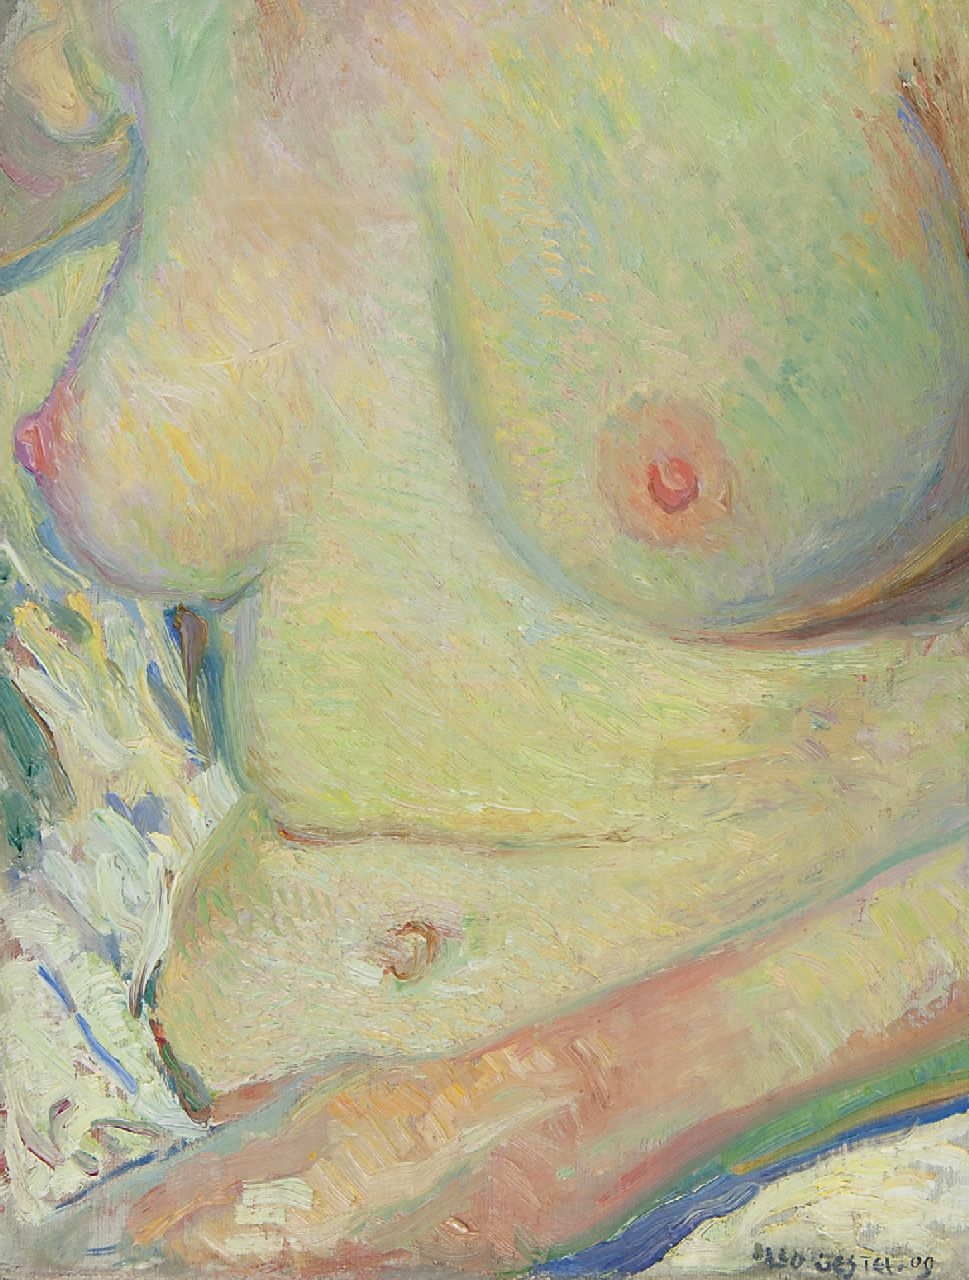 Gestel L.  | Leendert 'Leo' Gestel | Paintings offered for sale | Woman bathing, oil on canvas 33.5 x 25.6 cm, signed l.r. and dated '09